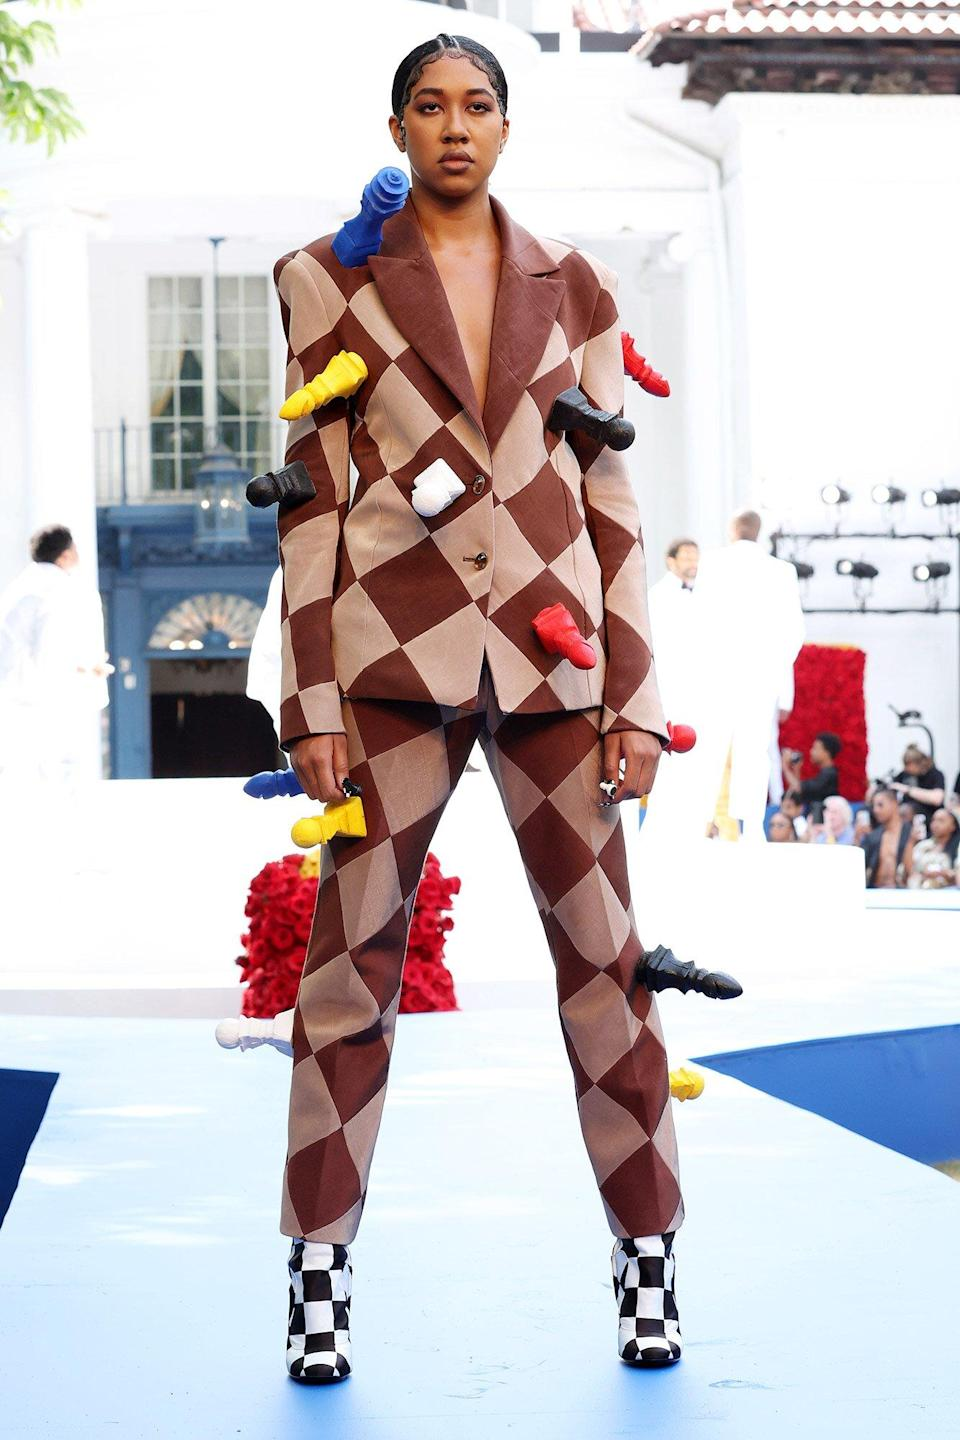 Aoki Lee Simmons walks the runway during the Pyer Moss Couture Haute Couture Fall/Winter 2021/2022 show as part of Paris Fashion Week on July 10, 2021 in Irvington